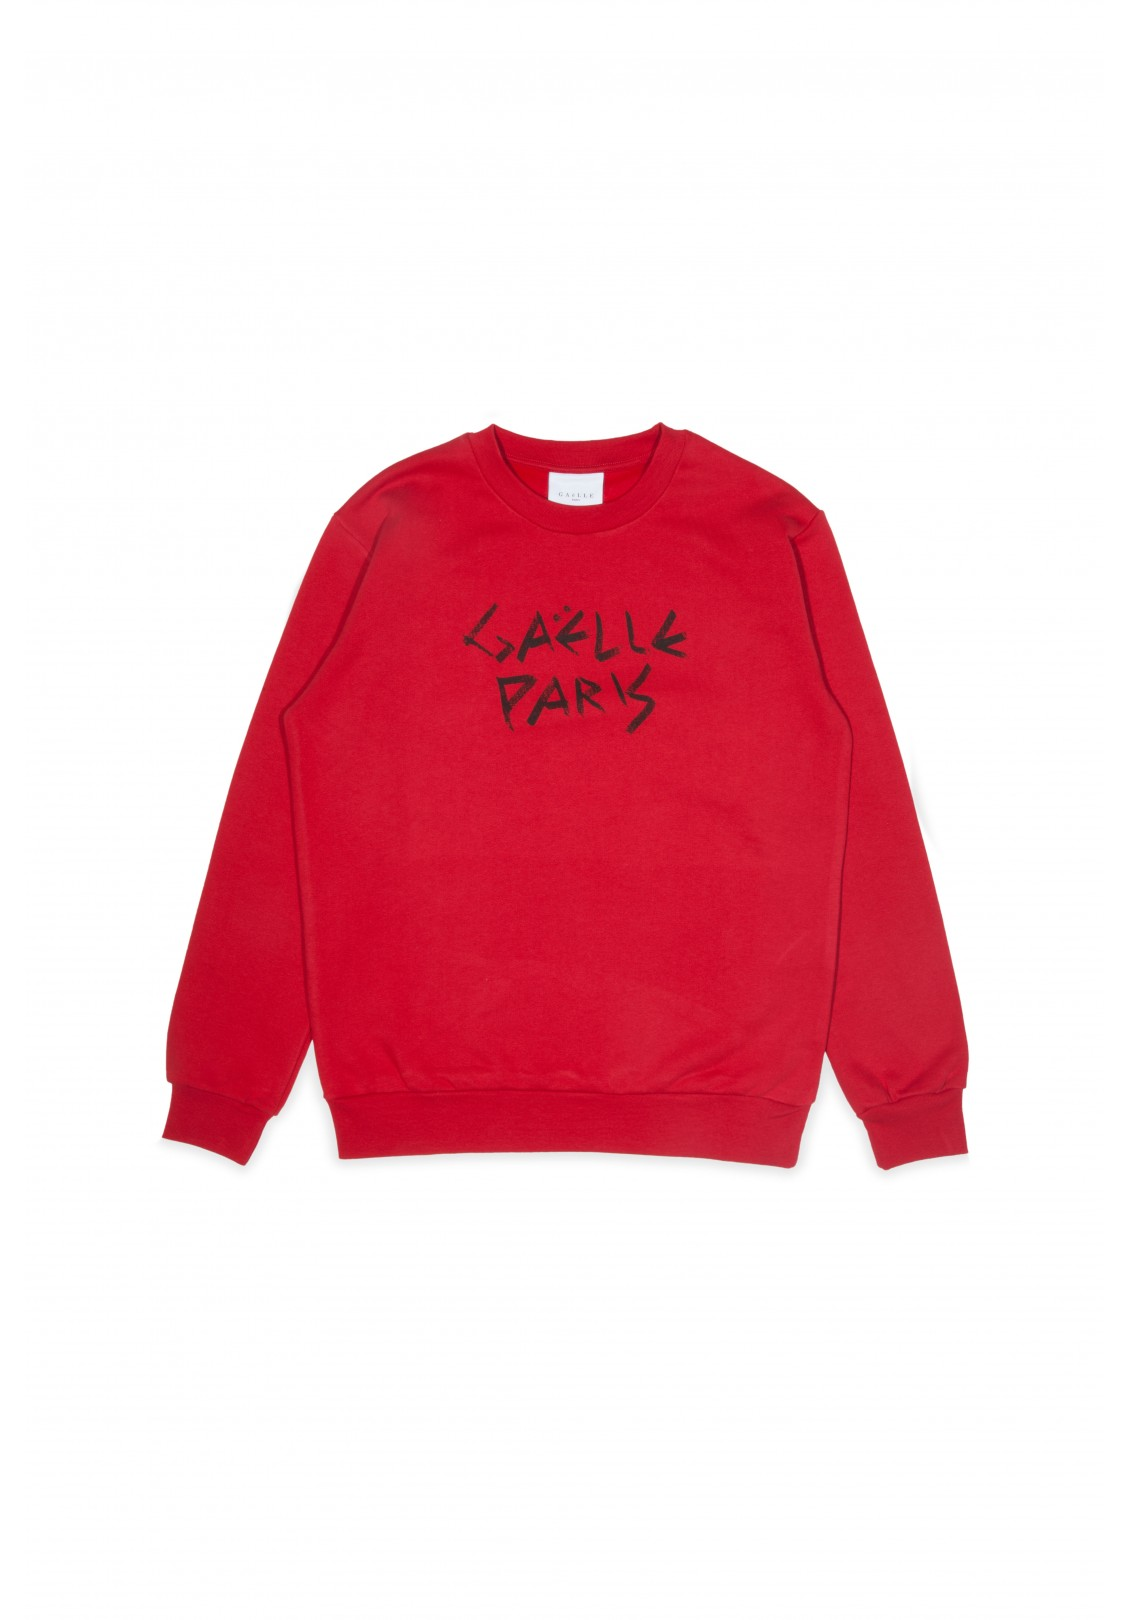 SWEATSHIRT - GBD4724 - GAELLE PARIS